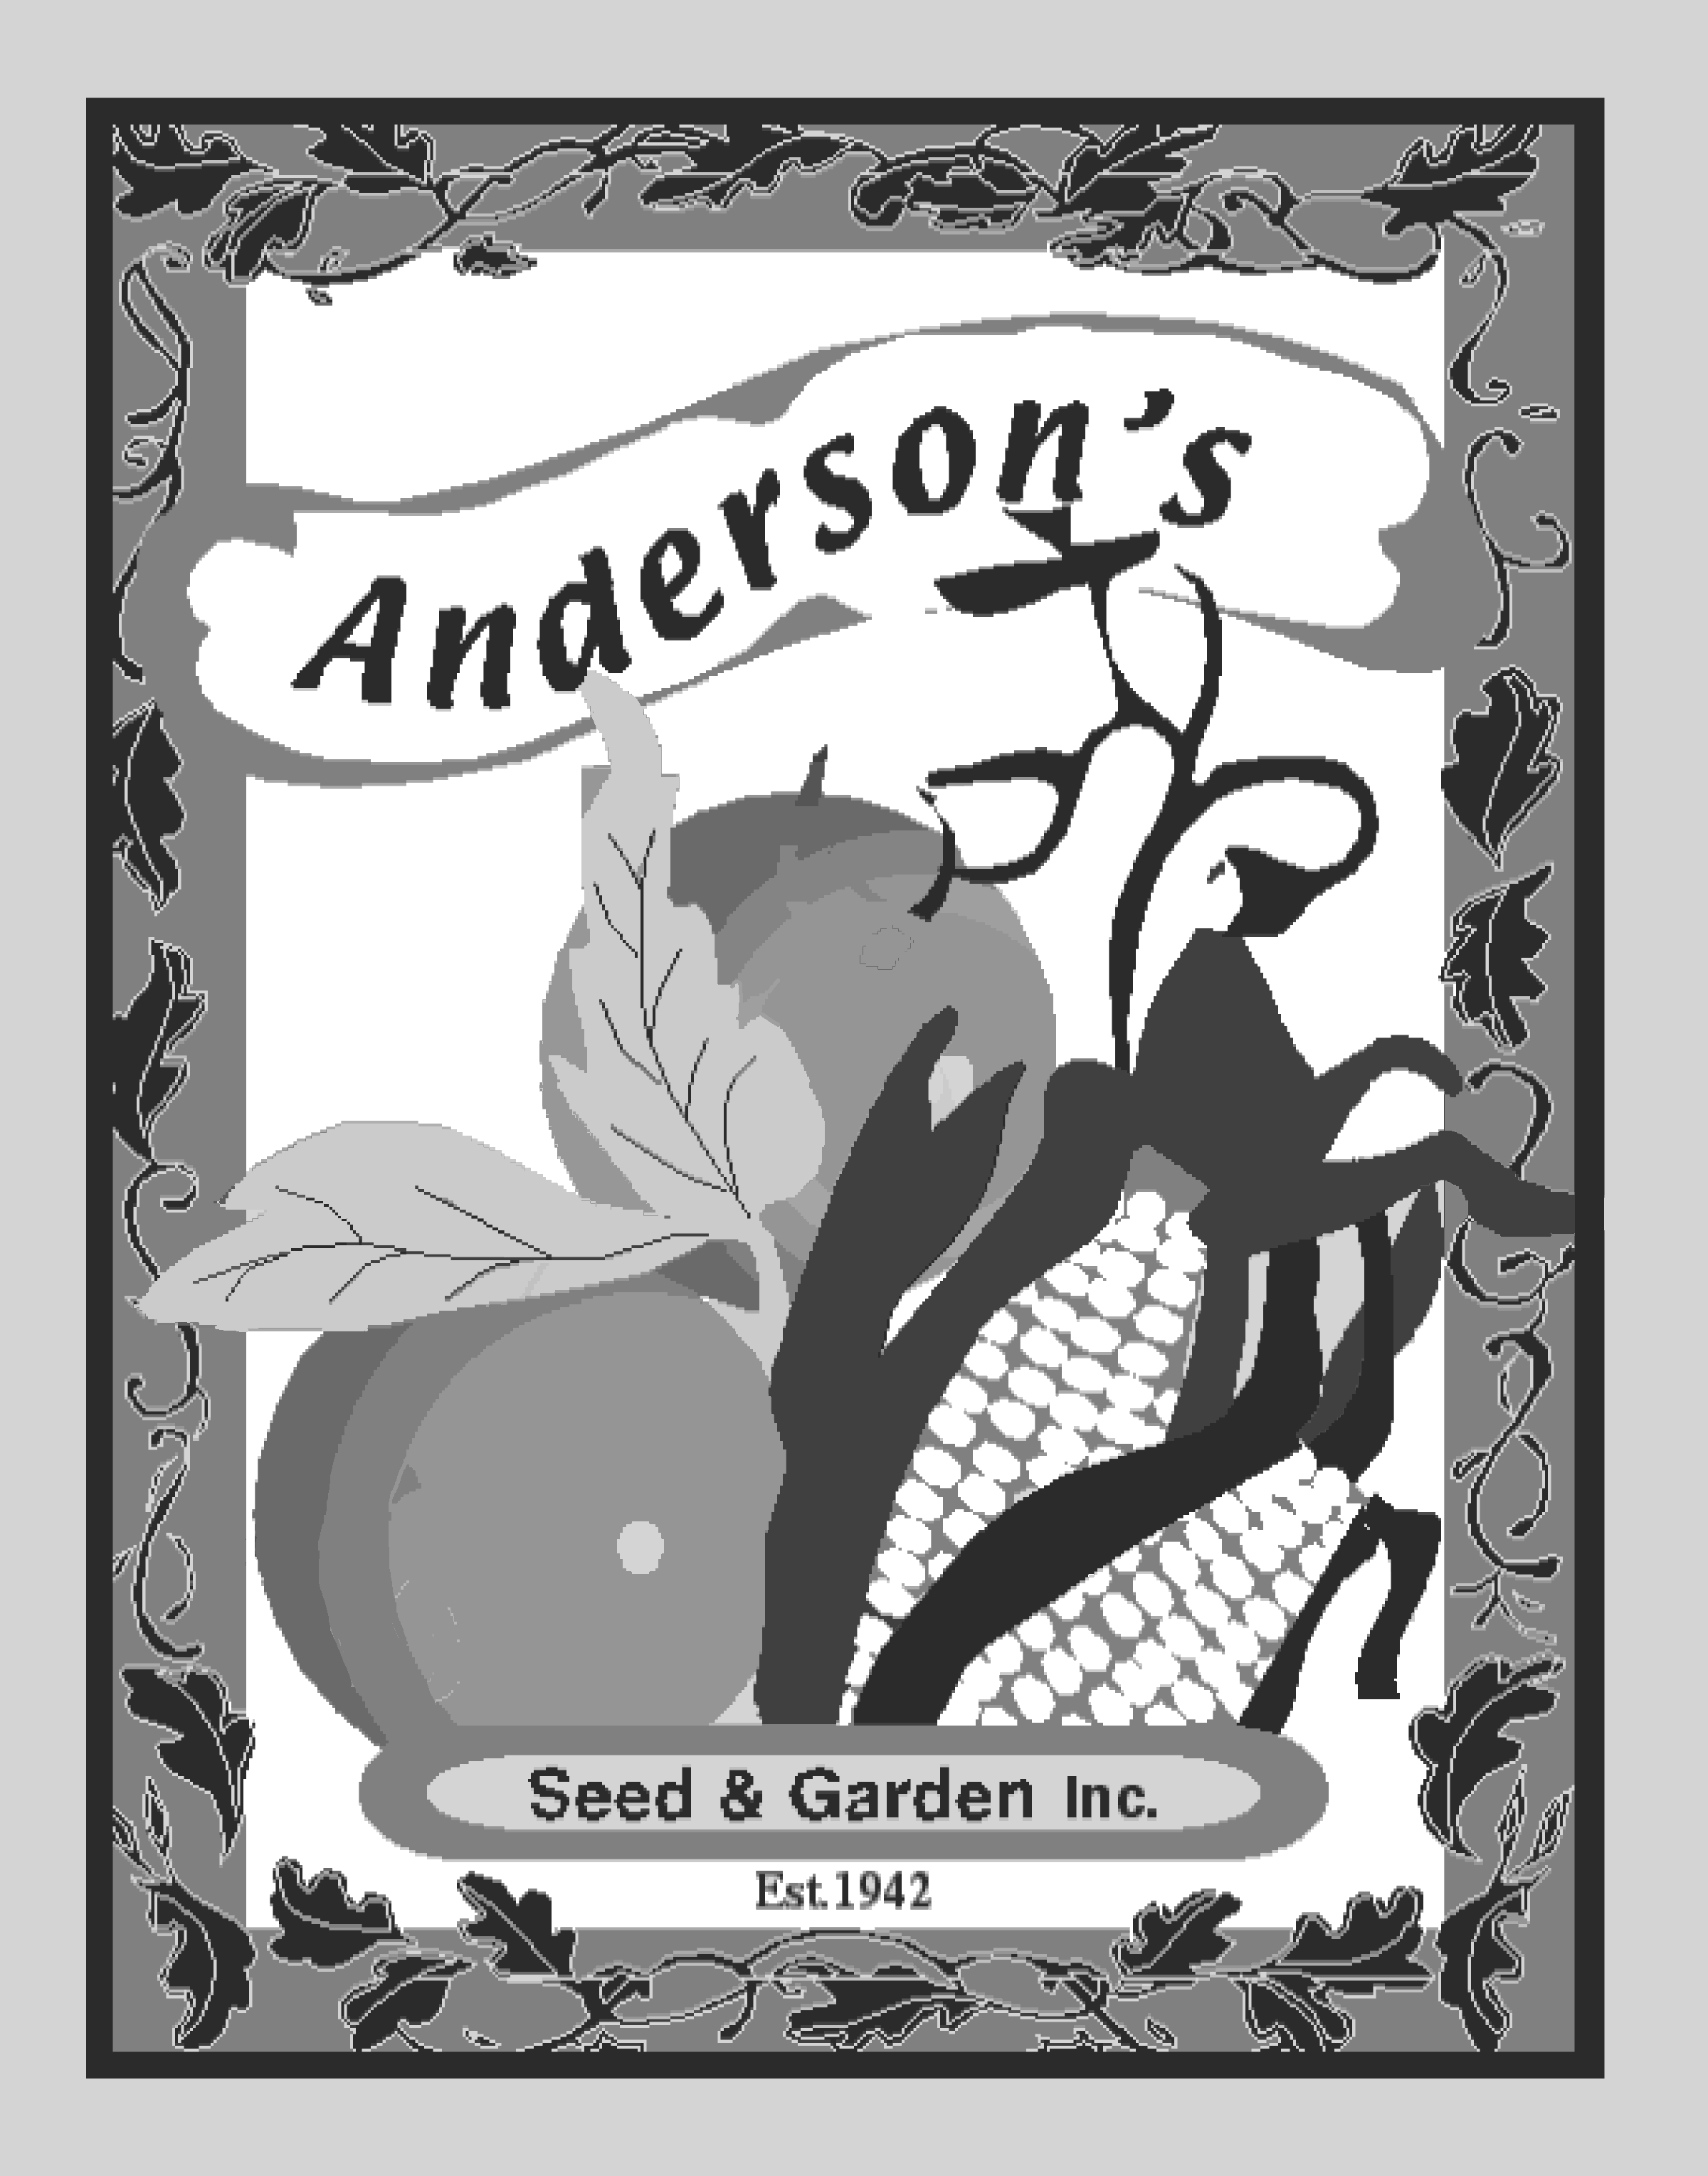 Green Champion Heirloom Collards Seed 1 oz.